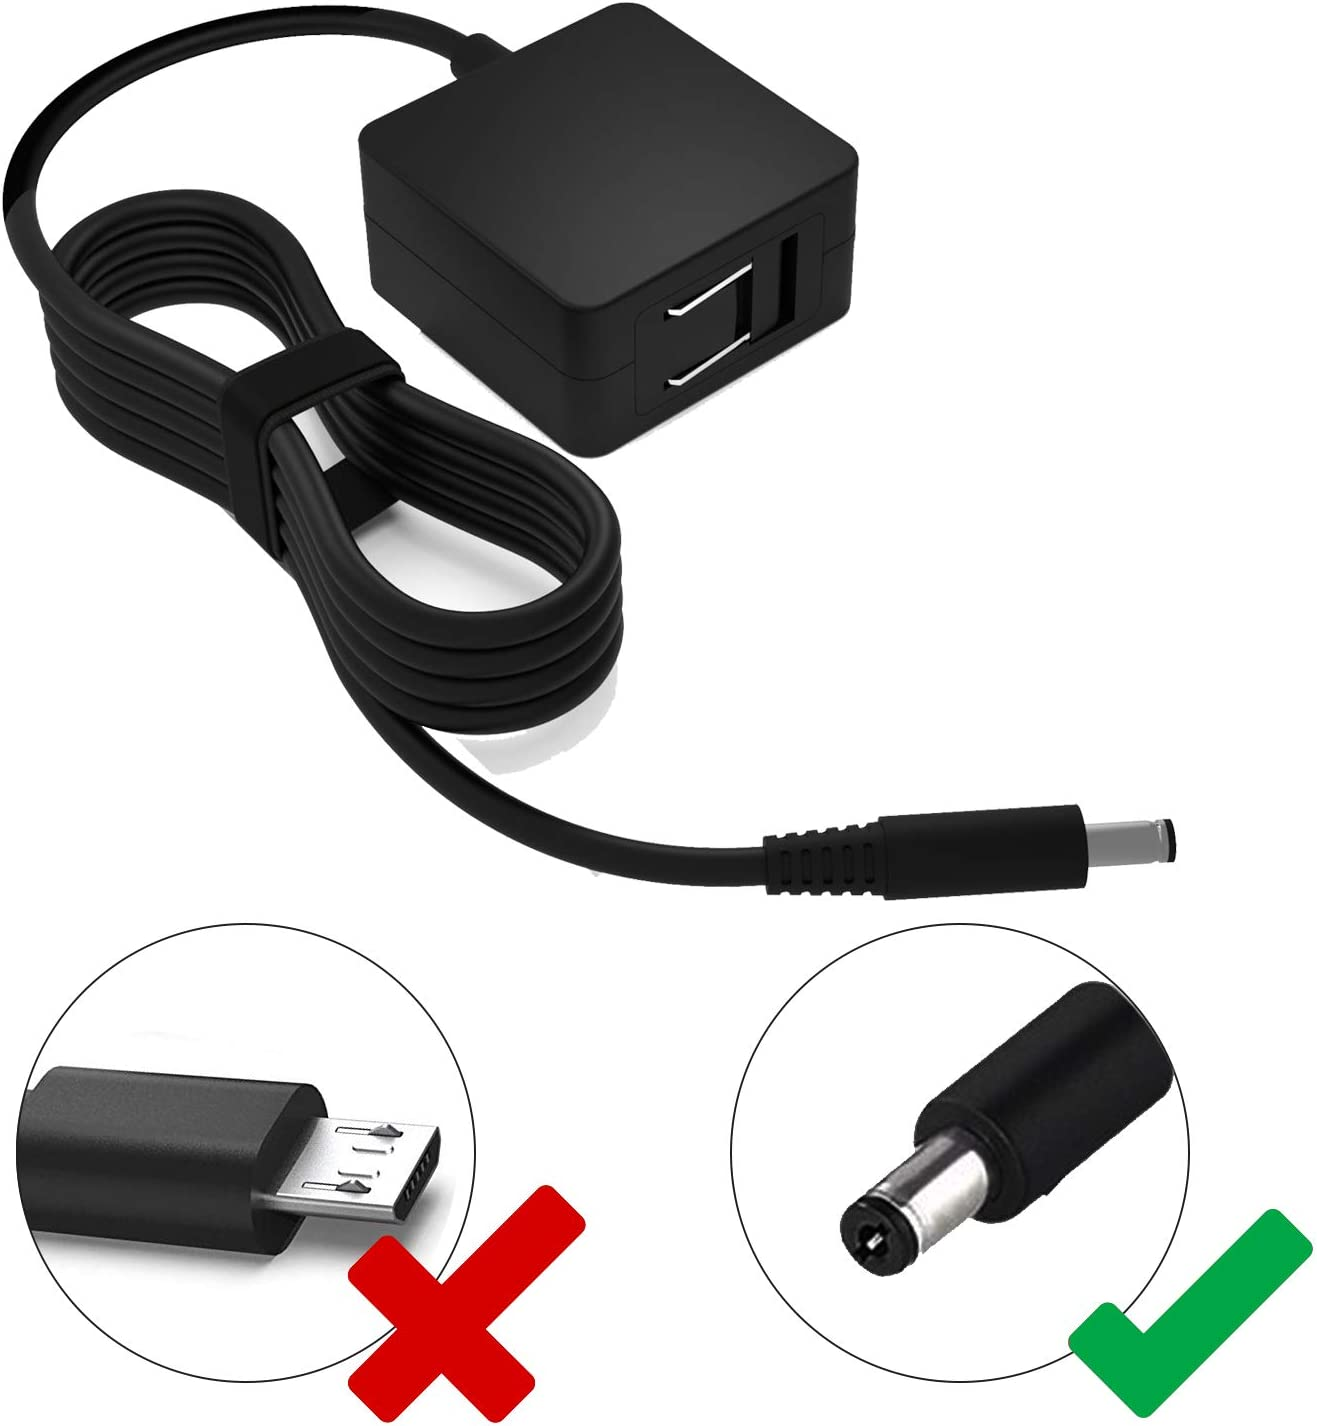 Replacement 17-20V AC Charger for Bose SoundLink I II III 1 2 3 Wireless Bluetooth Speaker 404600 414255 306386-101 369946-1300 301141 Power Supply Adapter Cord